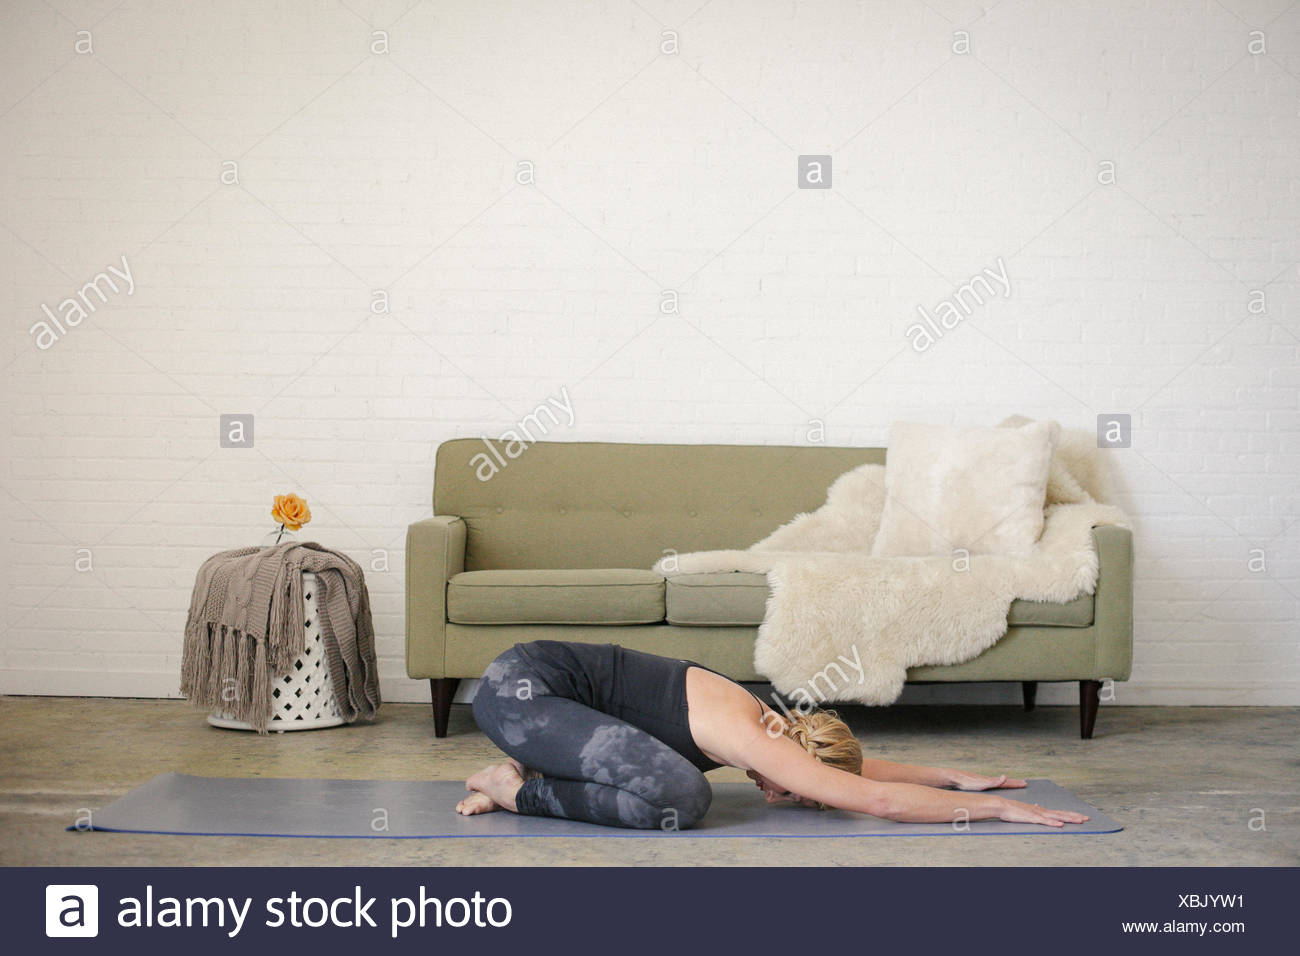 A blonde woman kneeling on a yoga mat in a room, doing yoga, her arm stretched out in front of her. - Stock Image